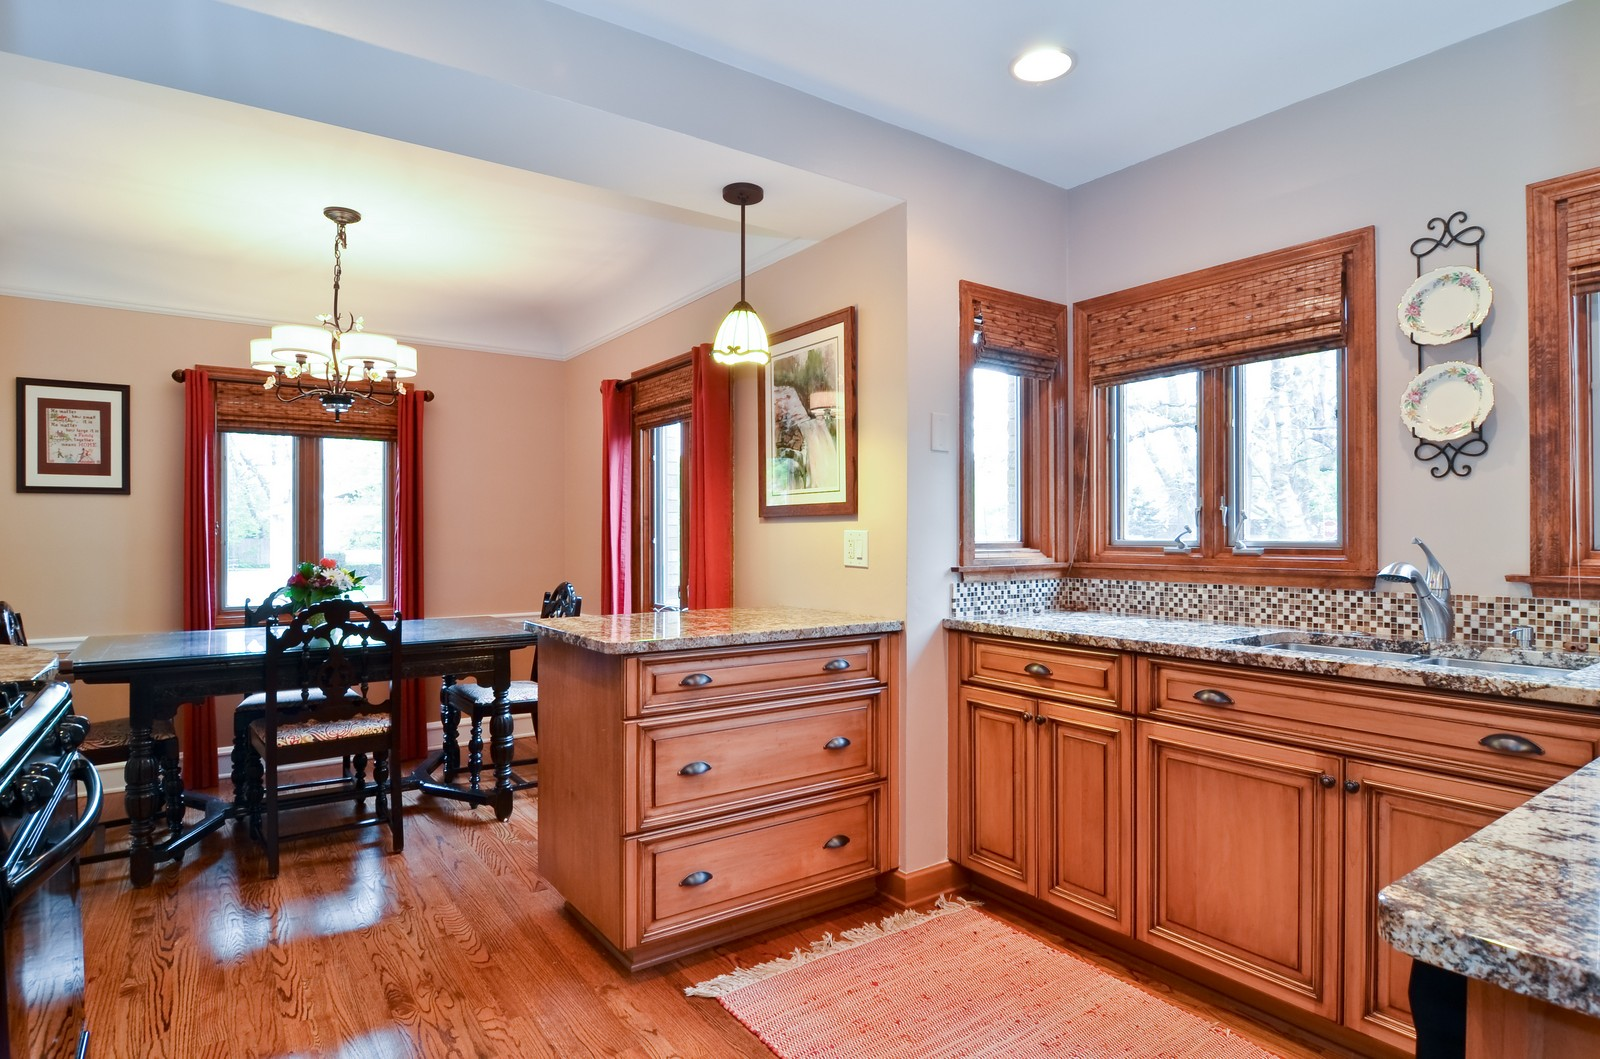 Real Estate Photography - 6712 N Dowagic, Chicago, IL, 60646 - Kitchen / Dining Room